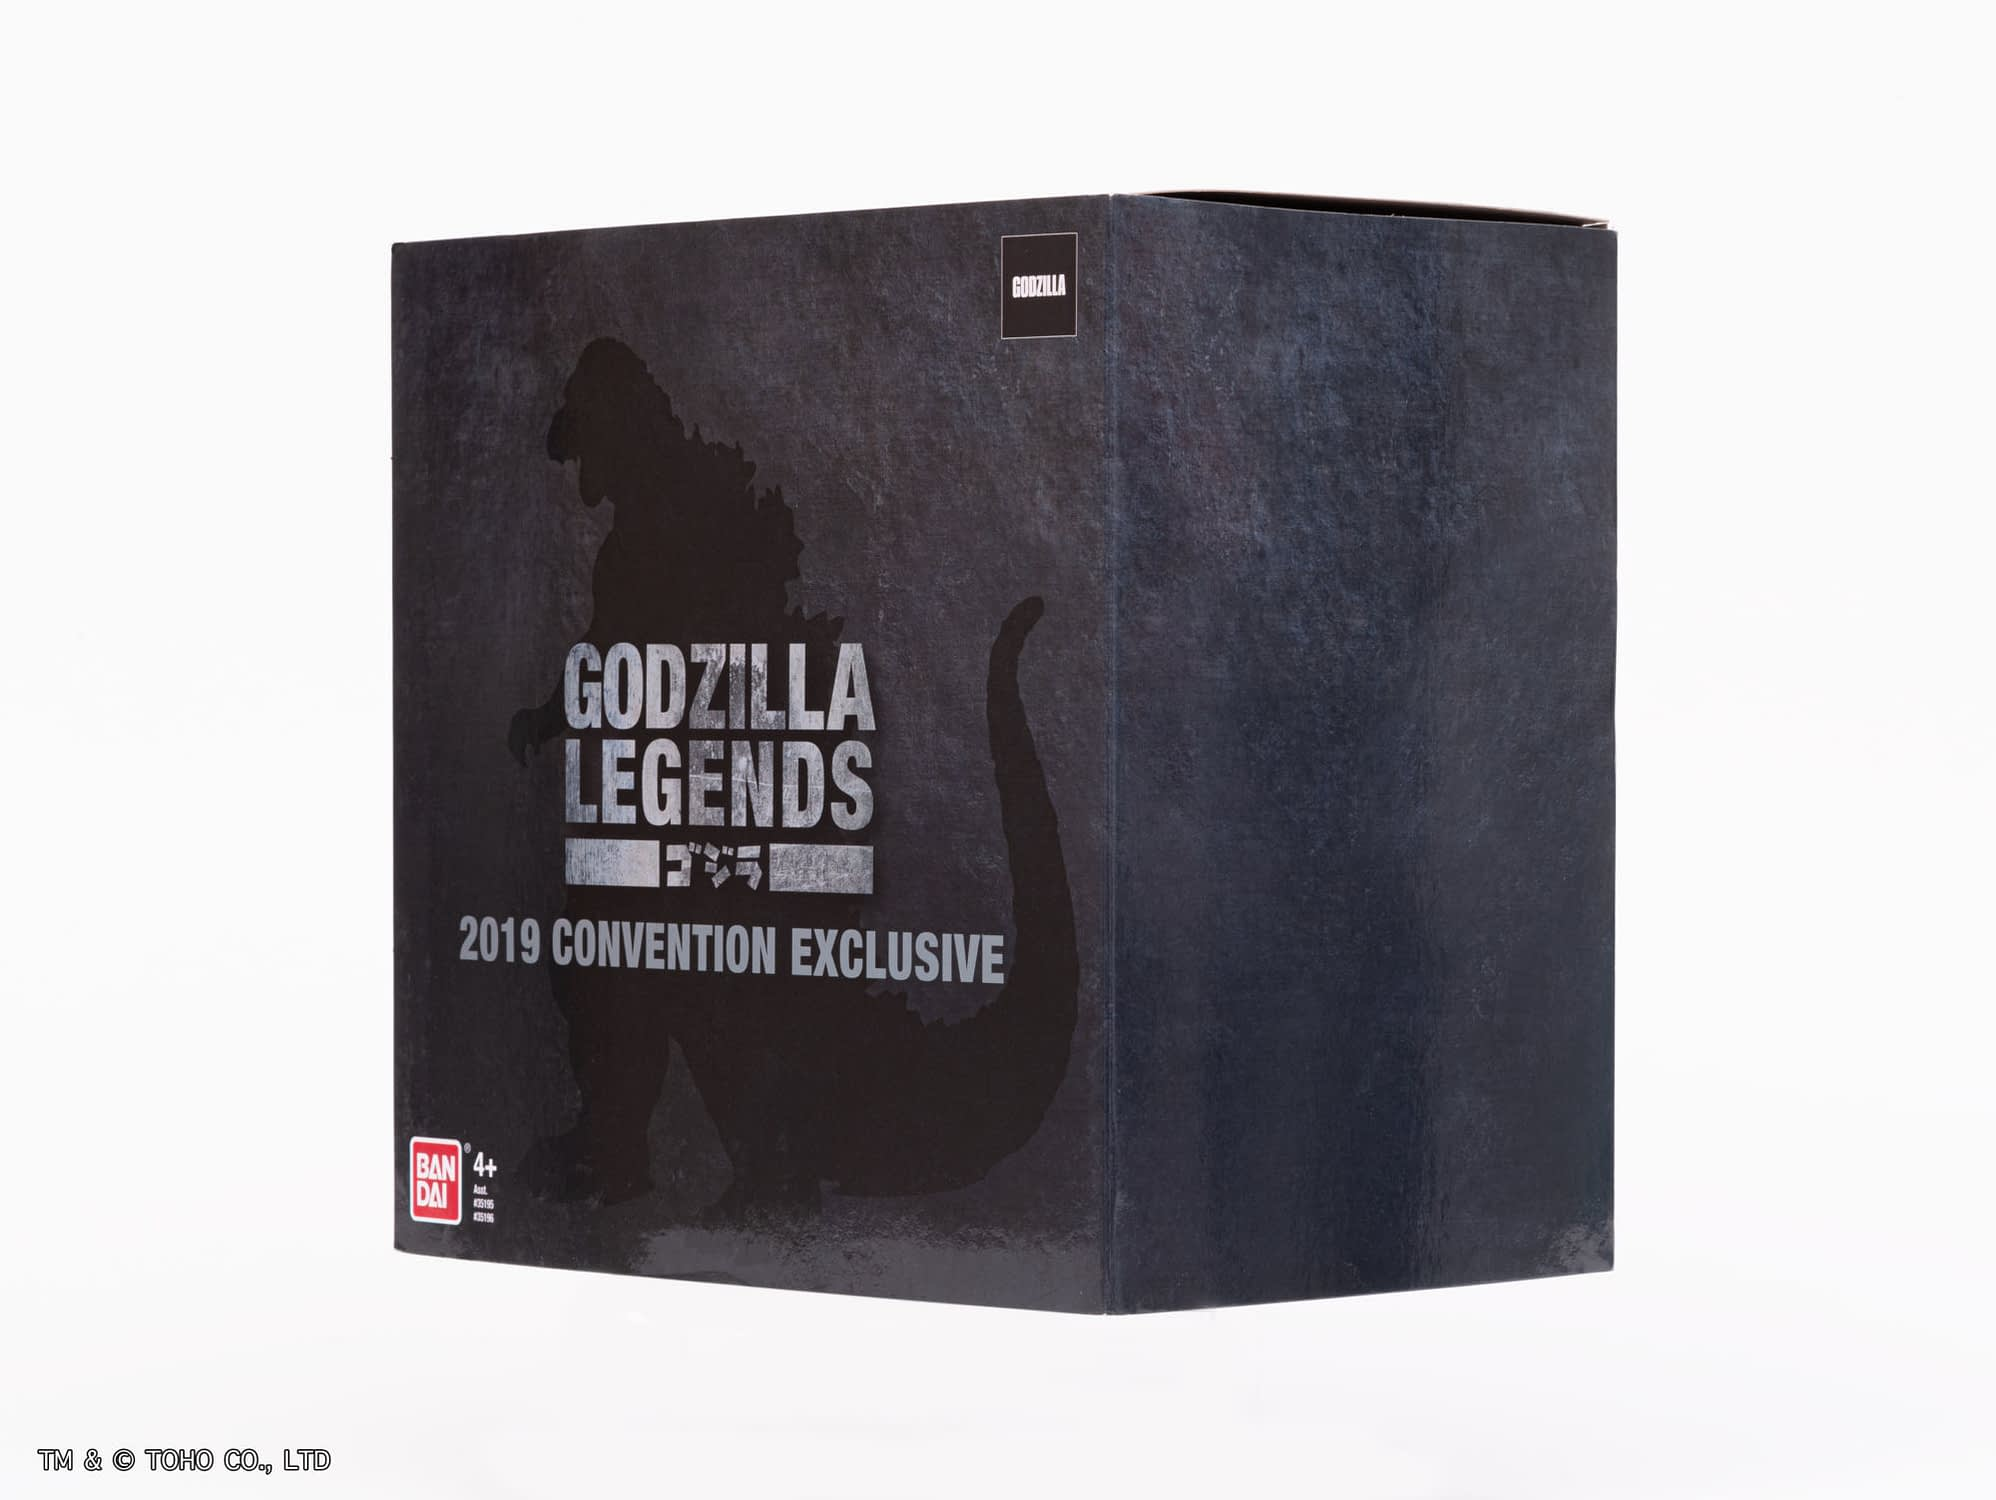 Godzilla Makes His Way to SDCC With a New Exclusive Figure